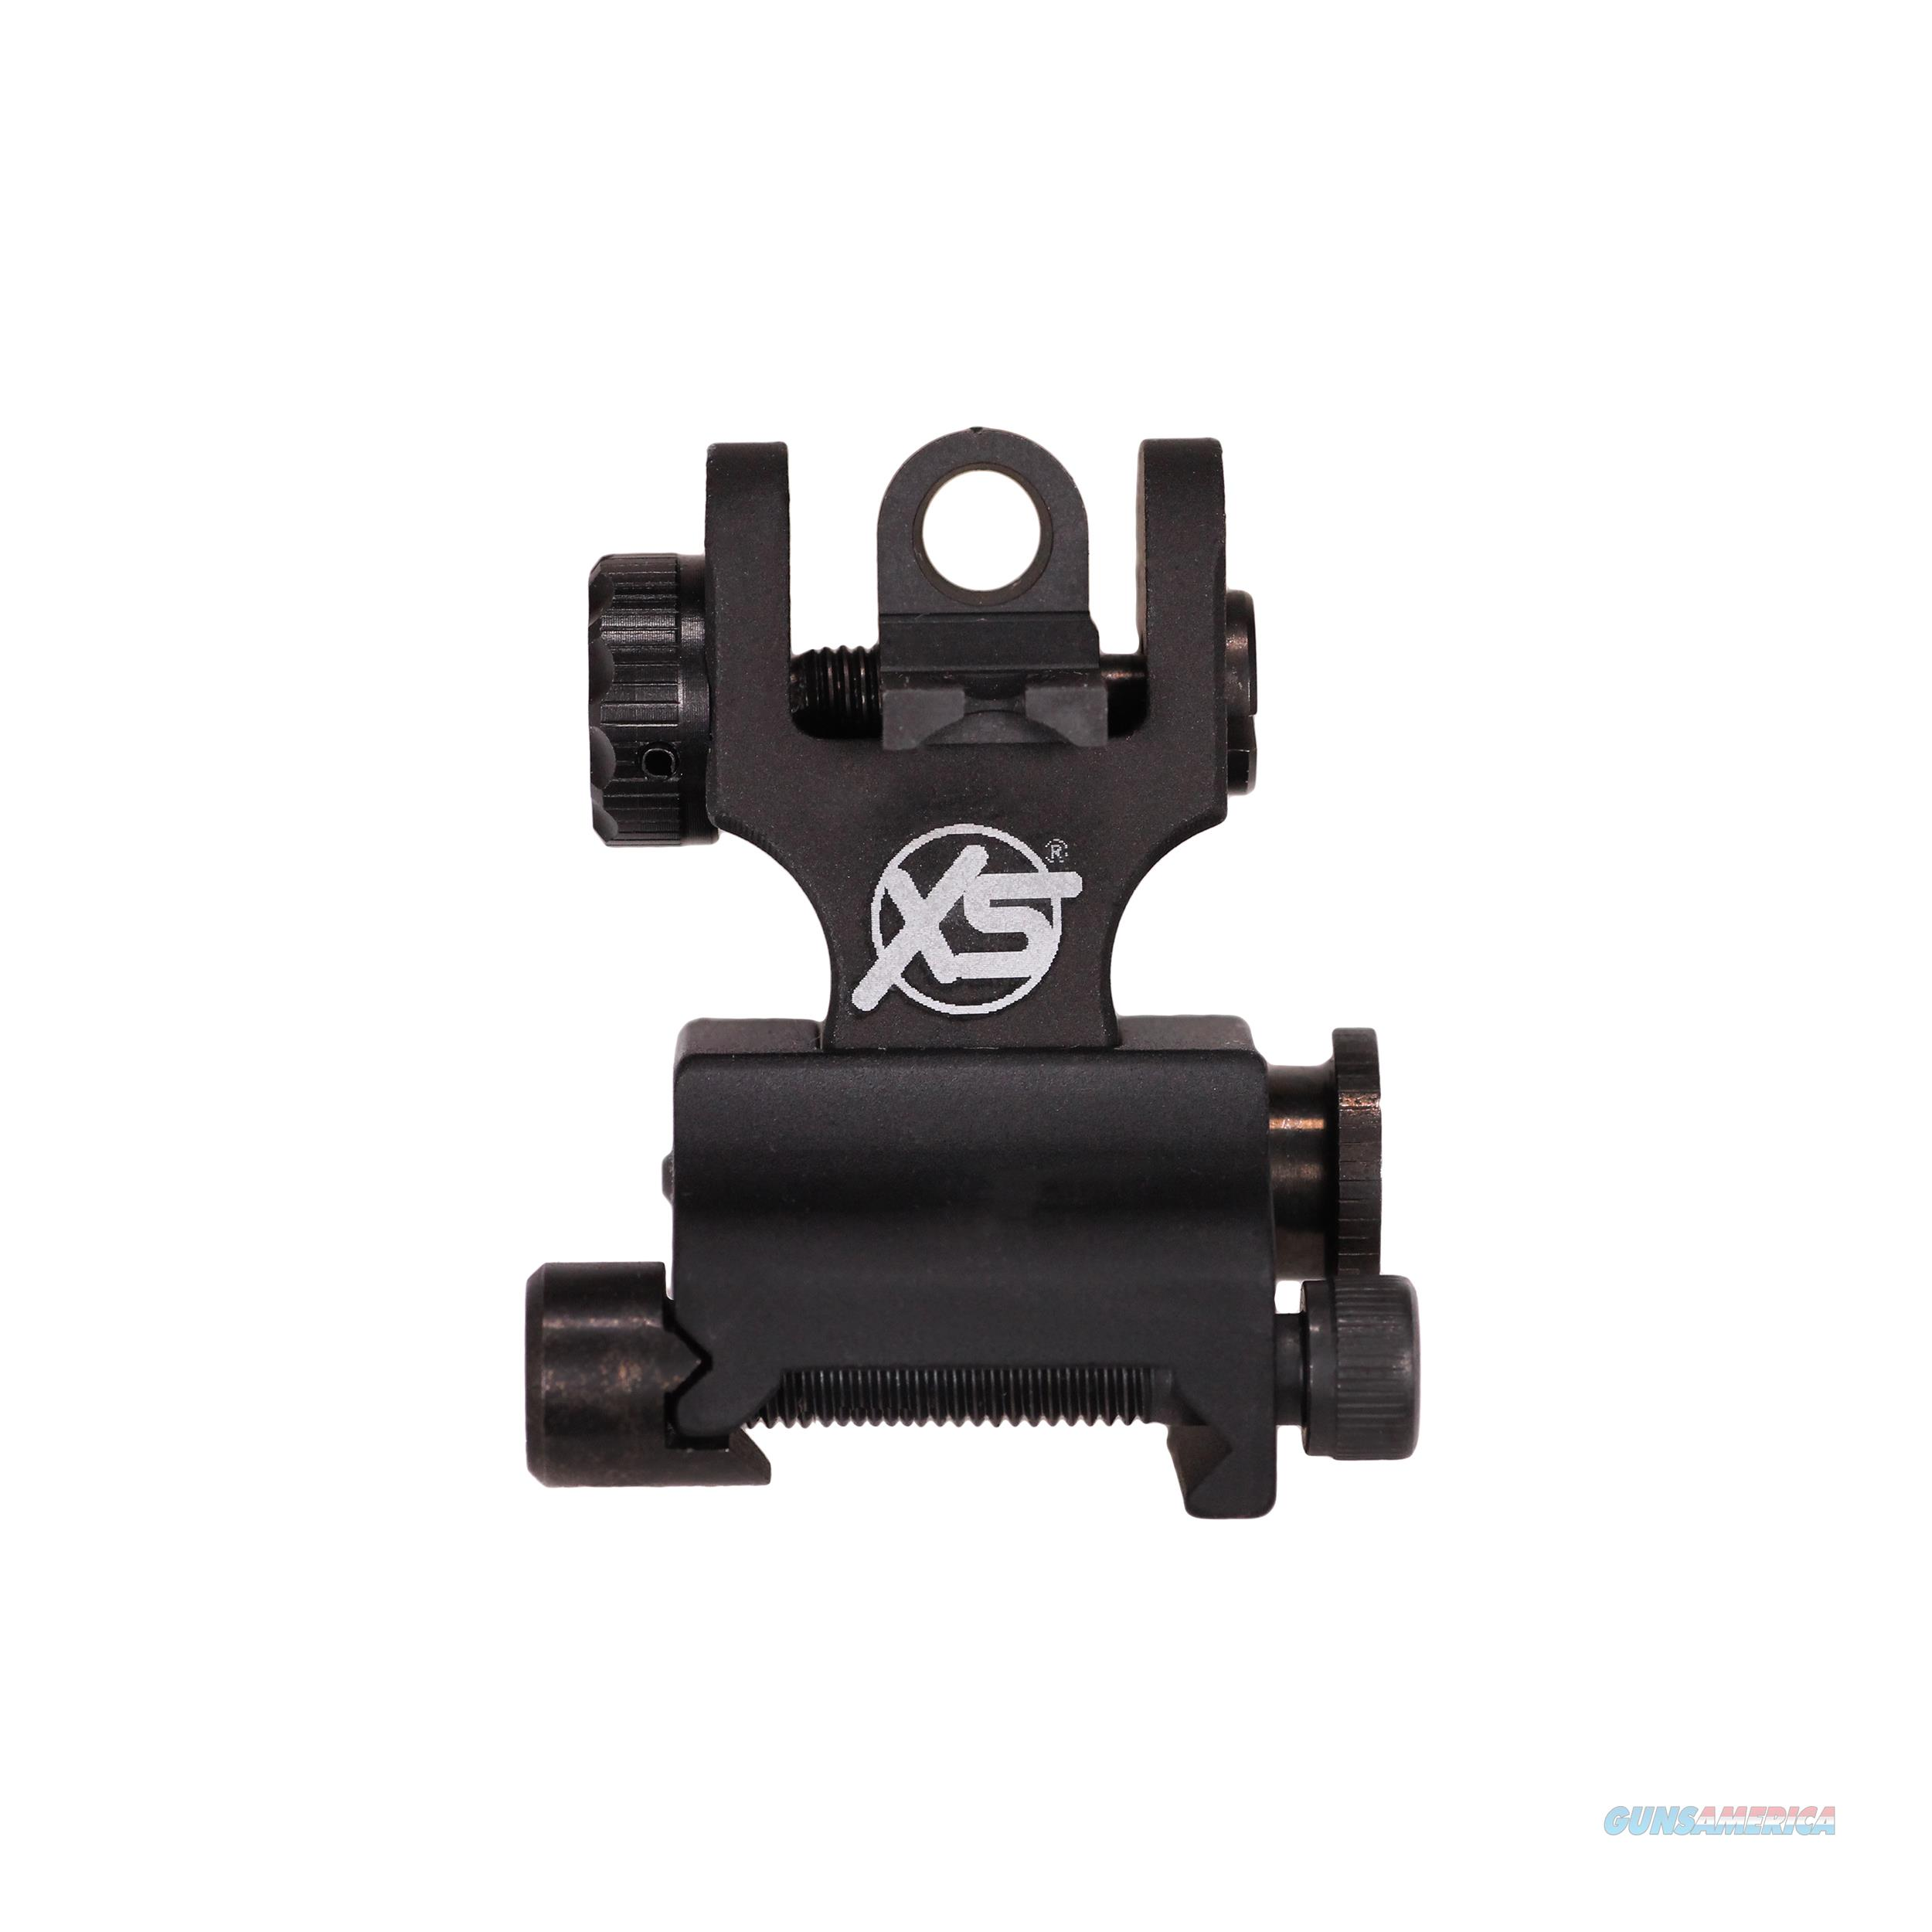 Xs Sights Folding Rear Sights AR-2014-8  Non-Guns > Iron/Metal/Peep Sights